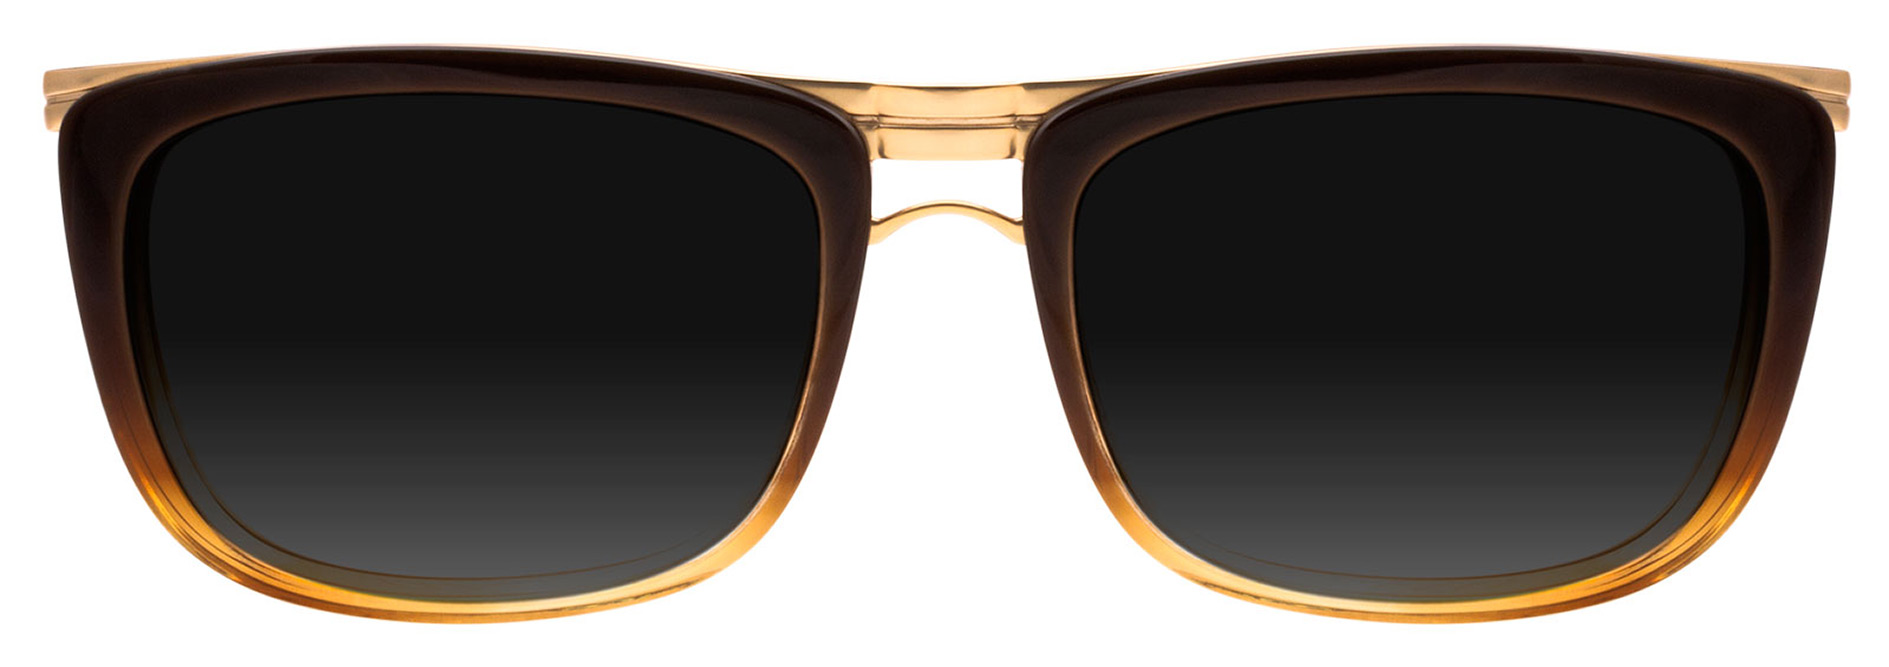 moscot-2013-sun-collection-sunglasses-50